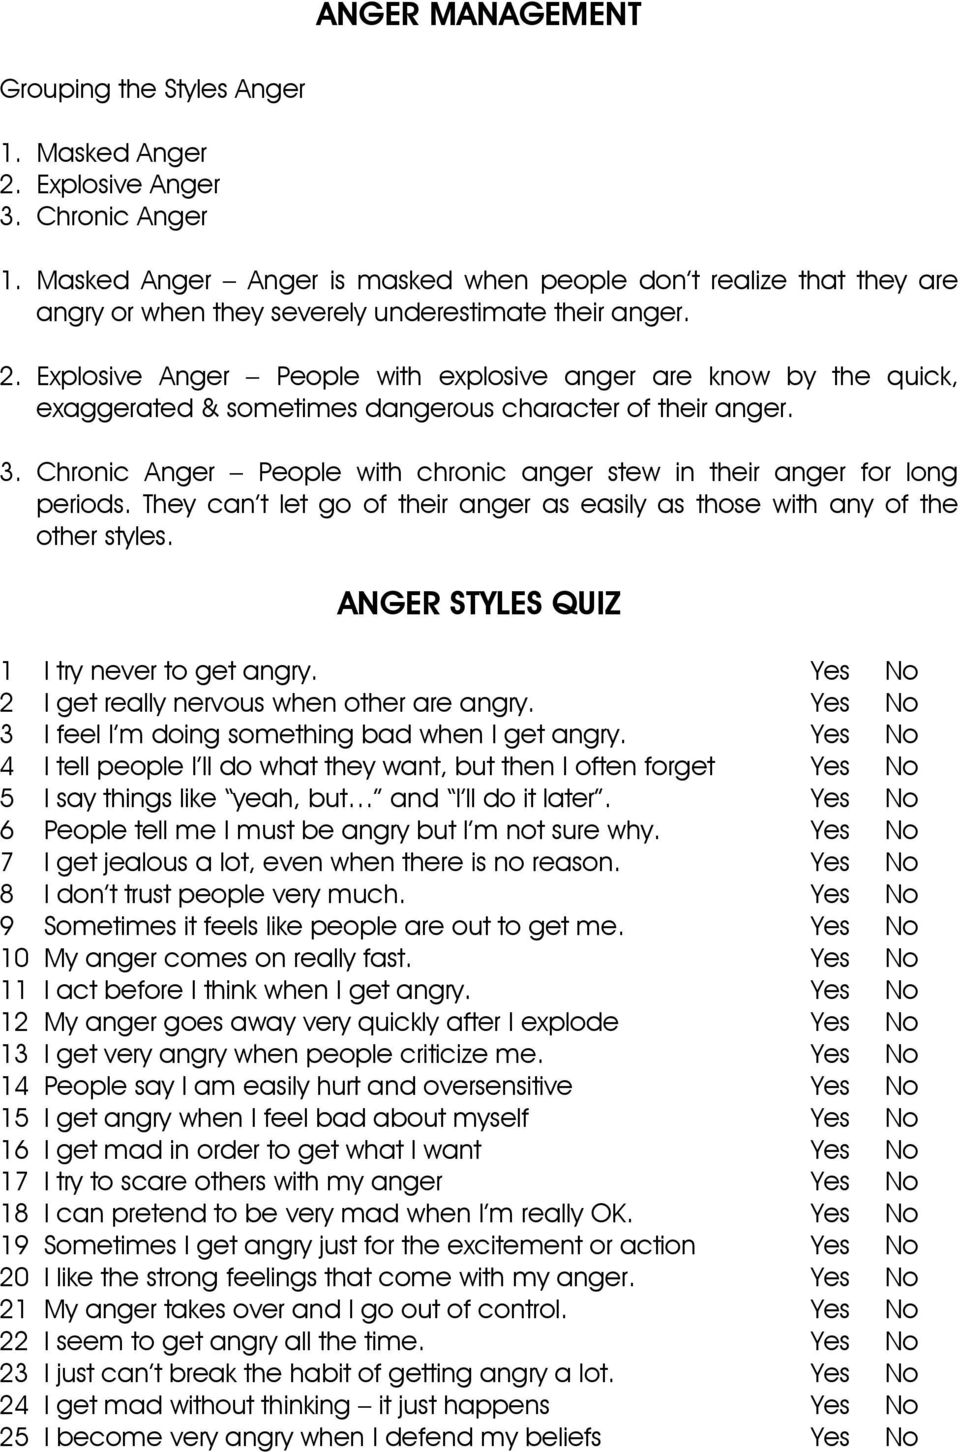 image regarding Anger Management Quiz Printable identify ANGER Regulate ANGER Layouts QUIZ - PDF